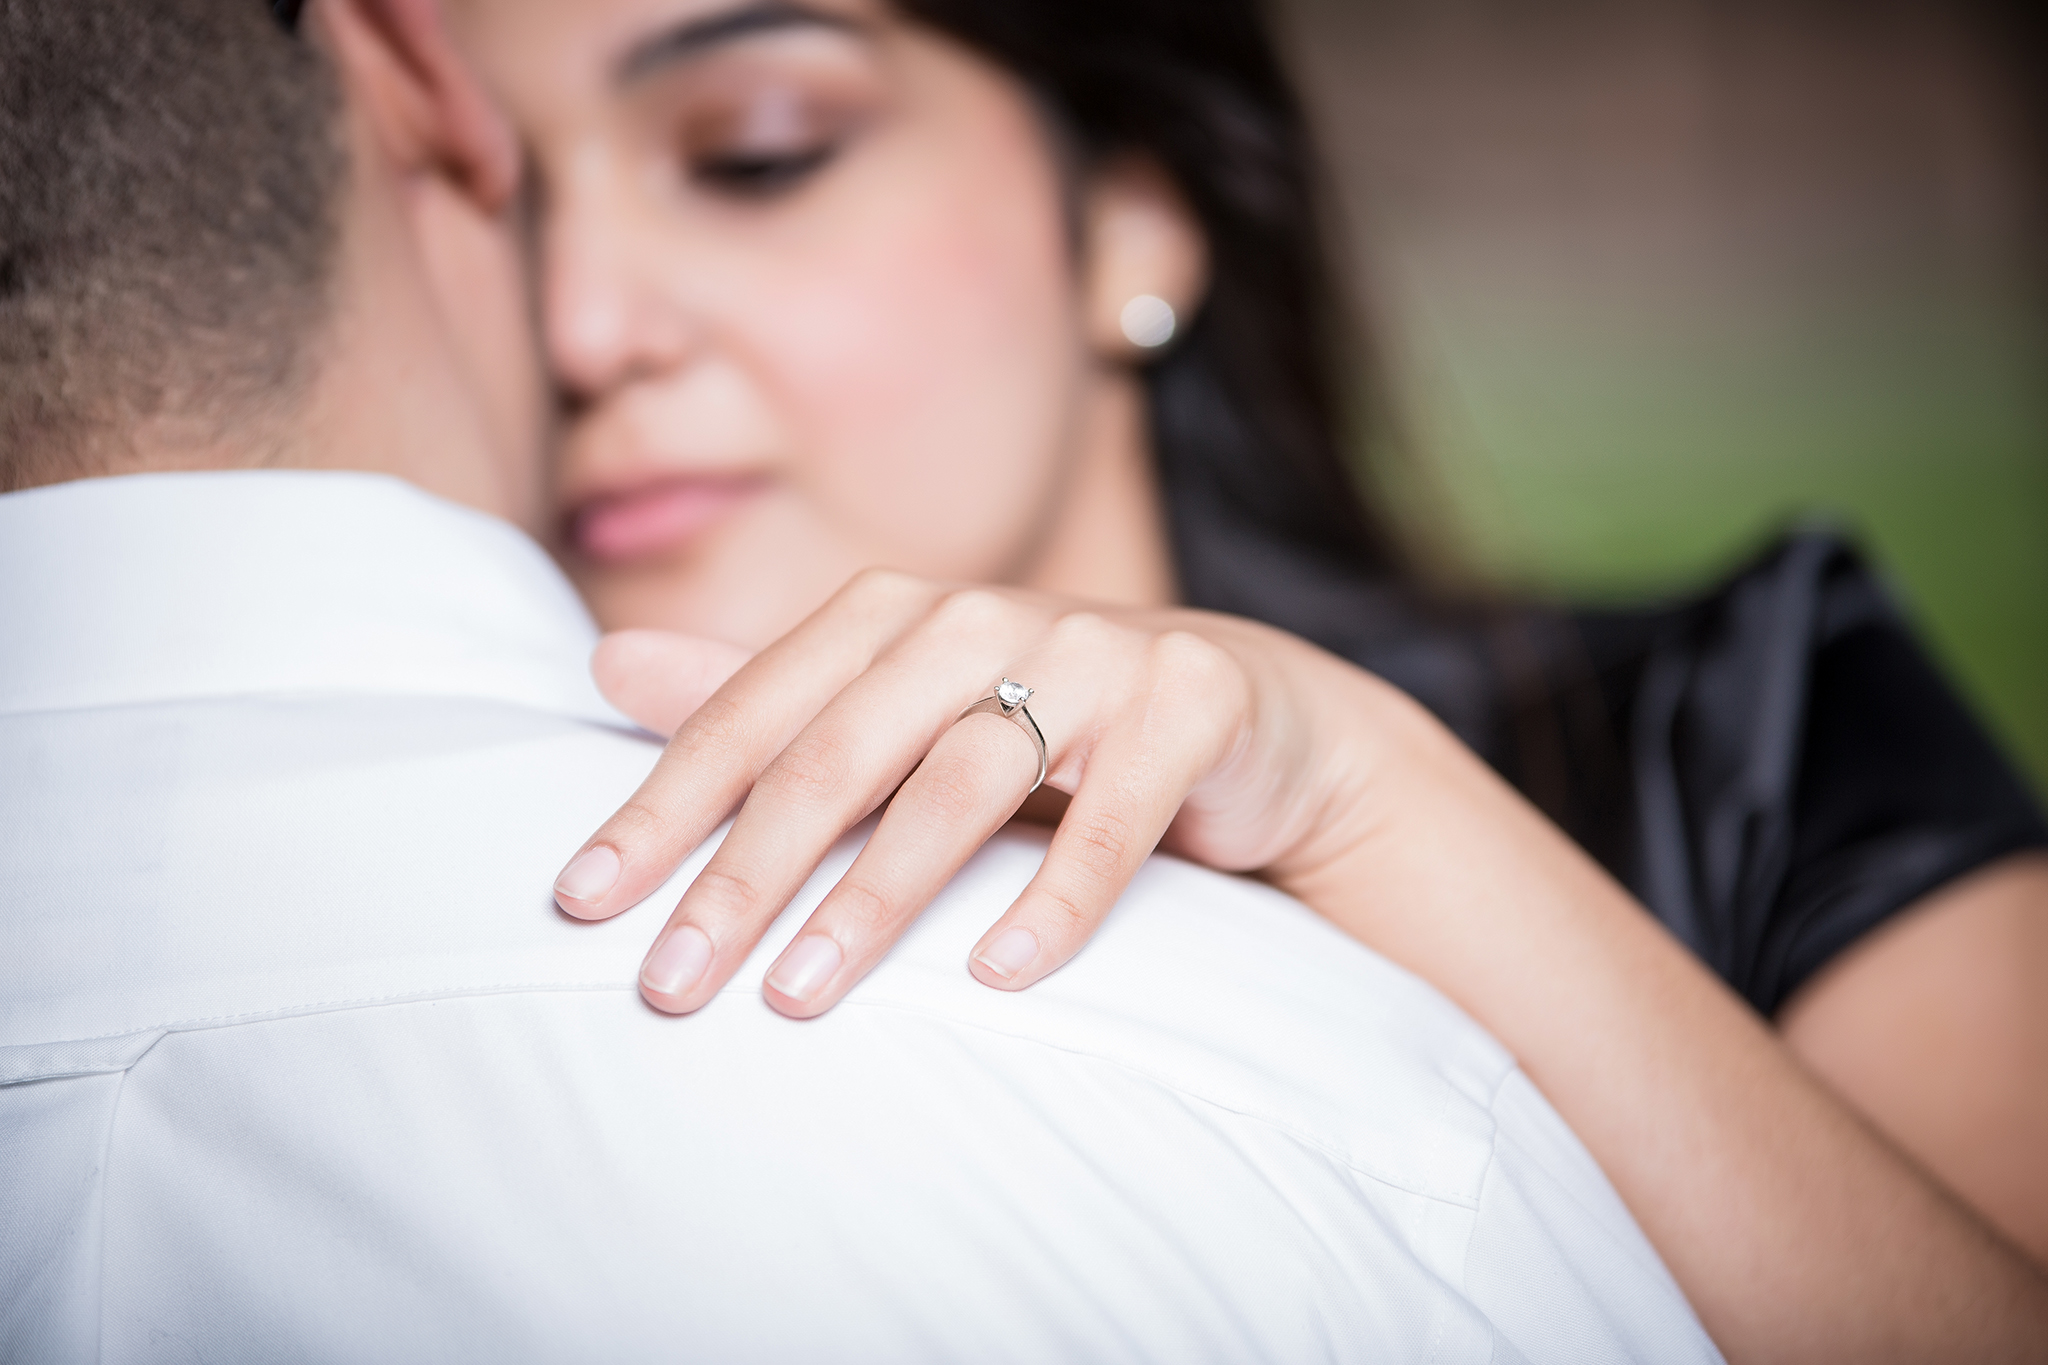 A man's shoulder with a woman looking at him with her hand on his shoulder and a ring on her finger.